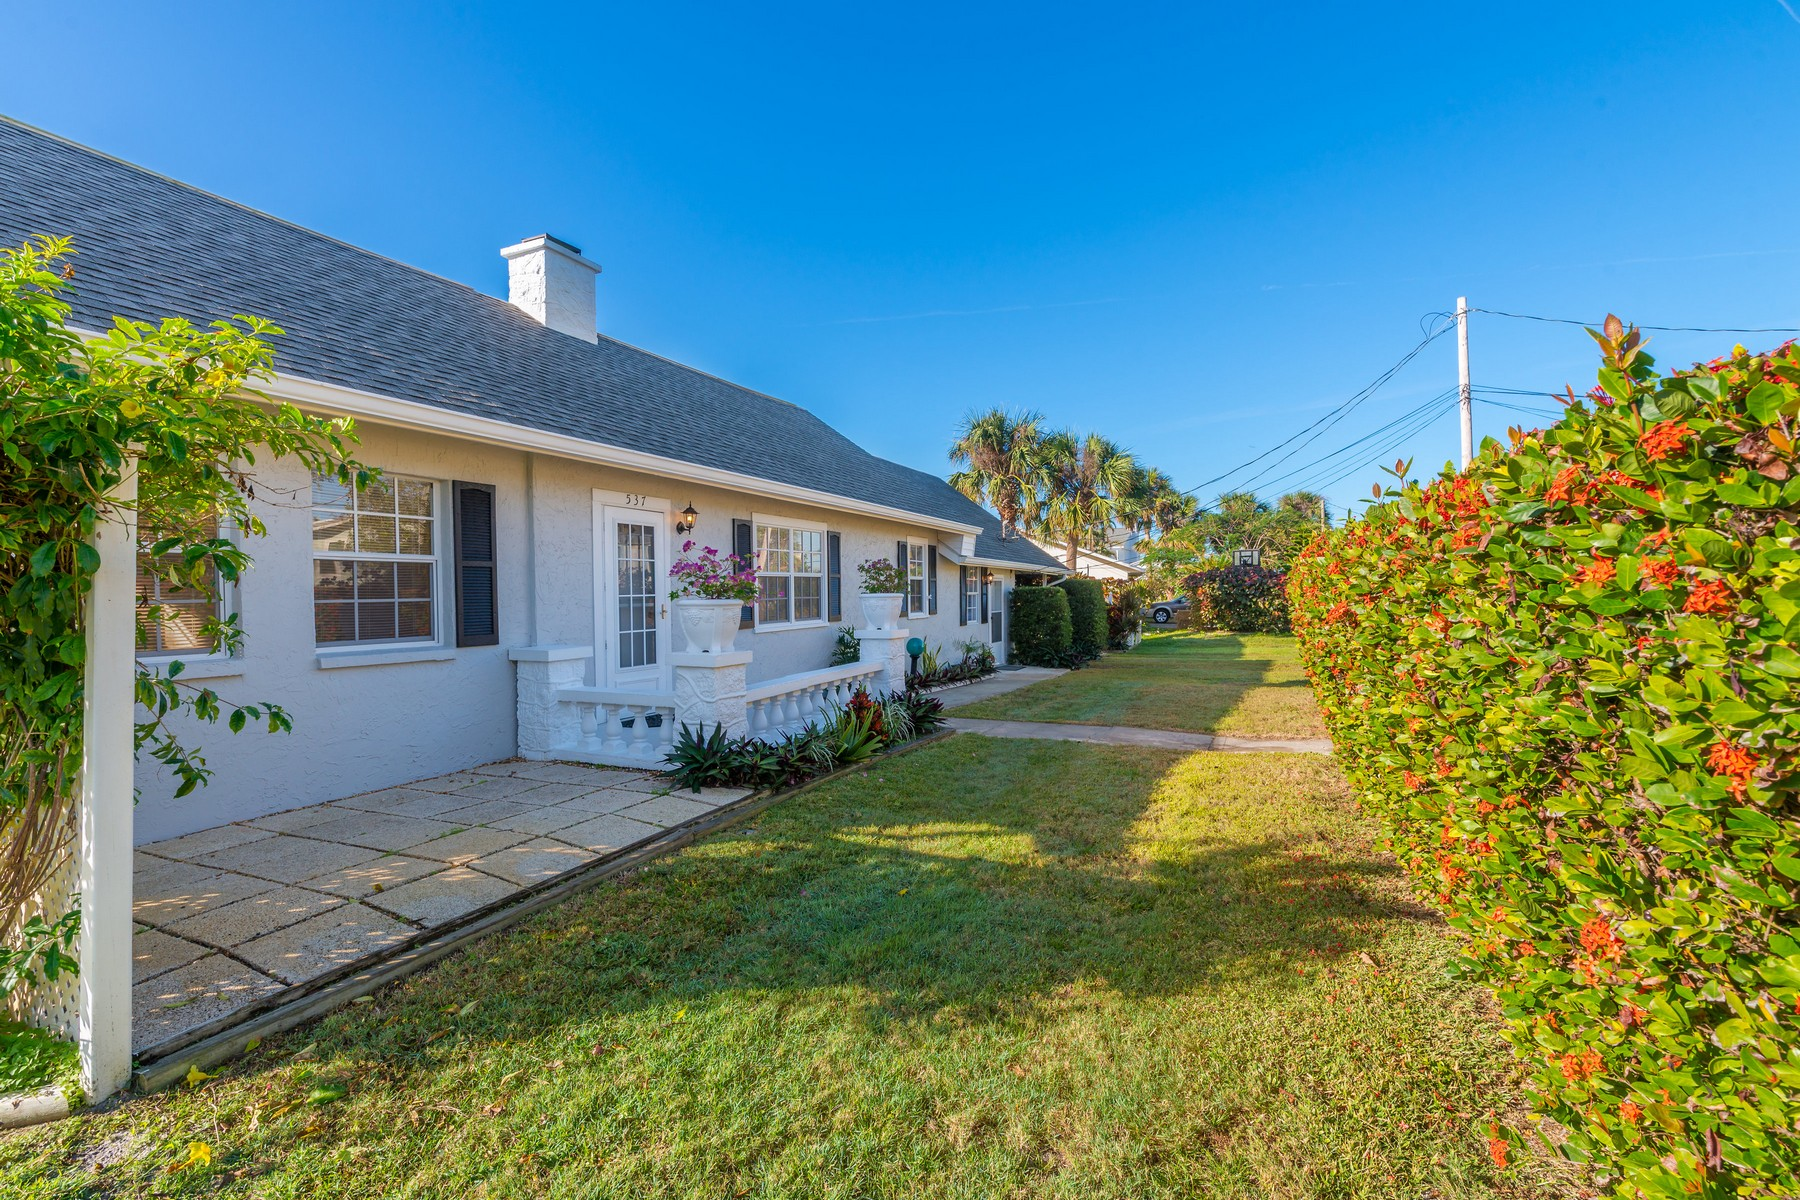 Multi-Family Home for Sale at 539 Sunset Blvd. 539 Sunset Blvd. Melbourne Beach, Florida 32951 United States